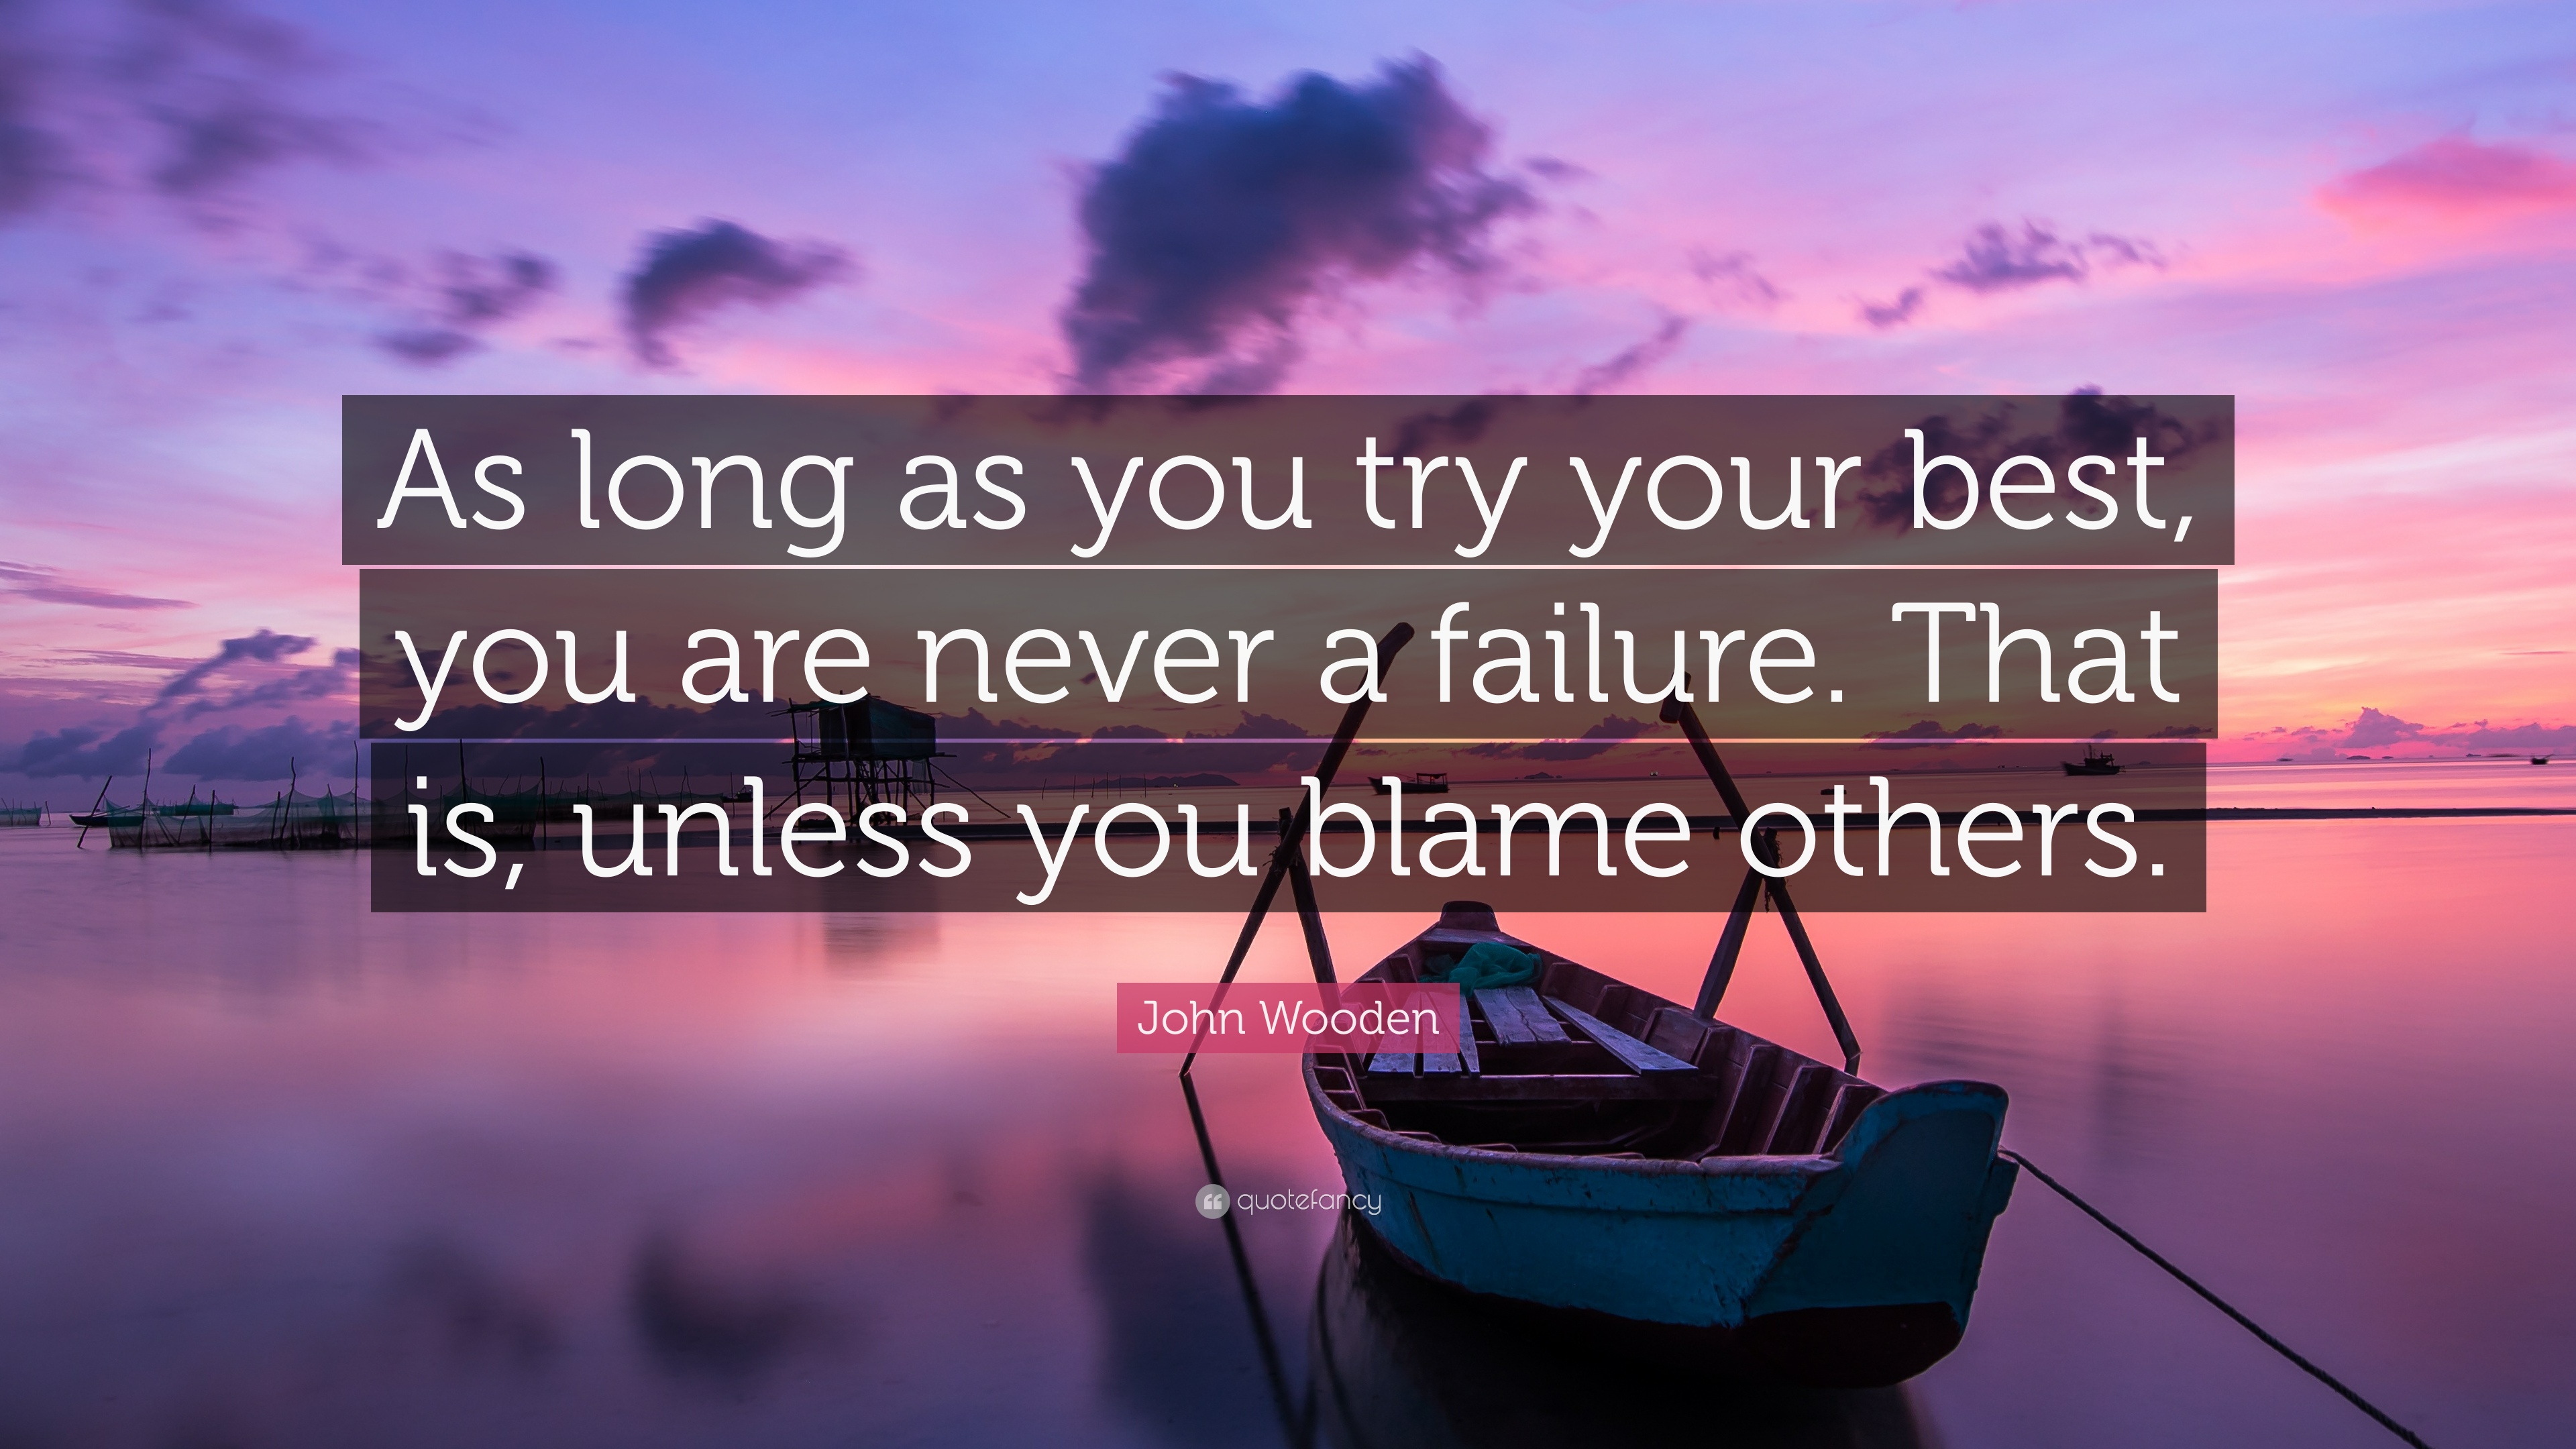 John Wooden Quote As Long As You Try Your Best You Are Never A